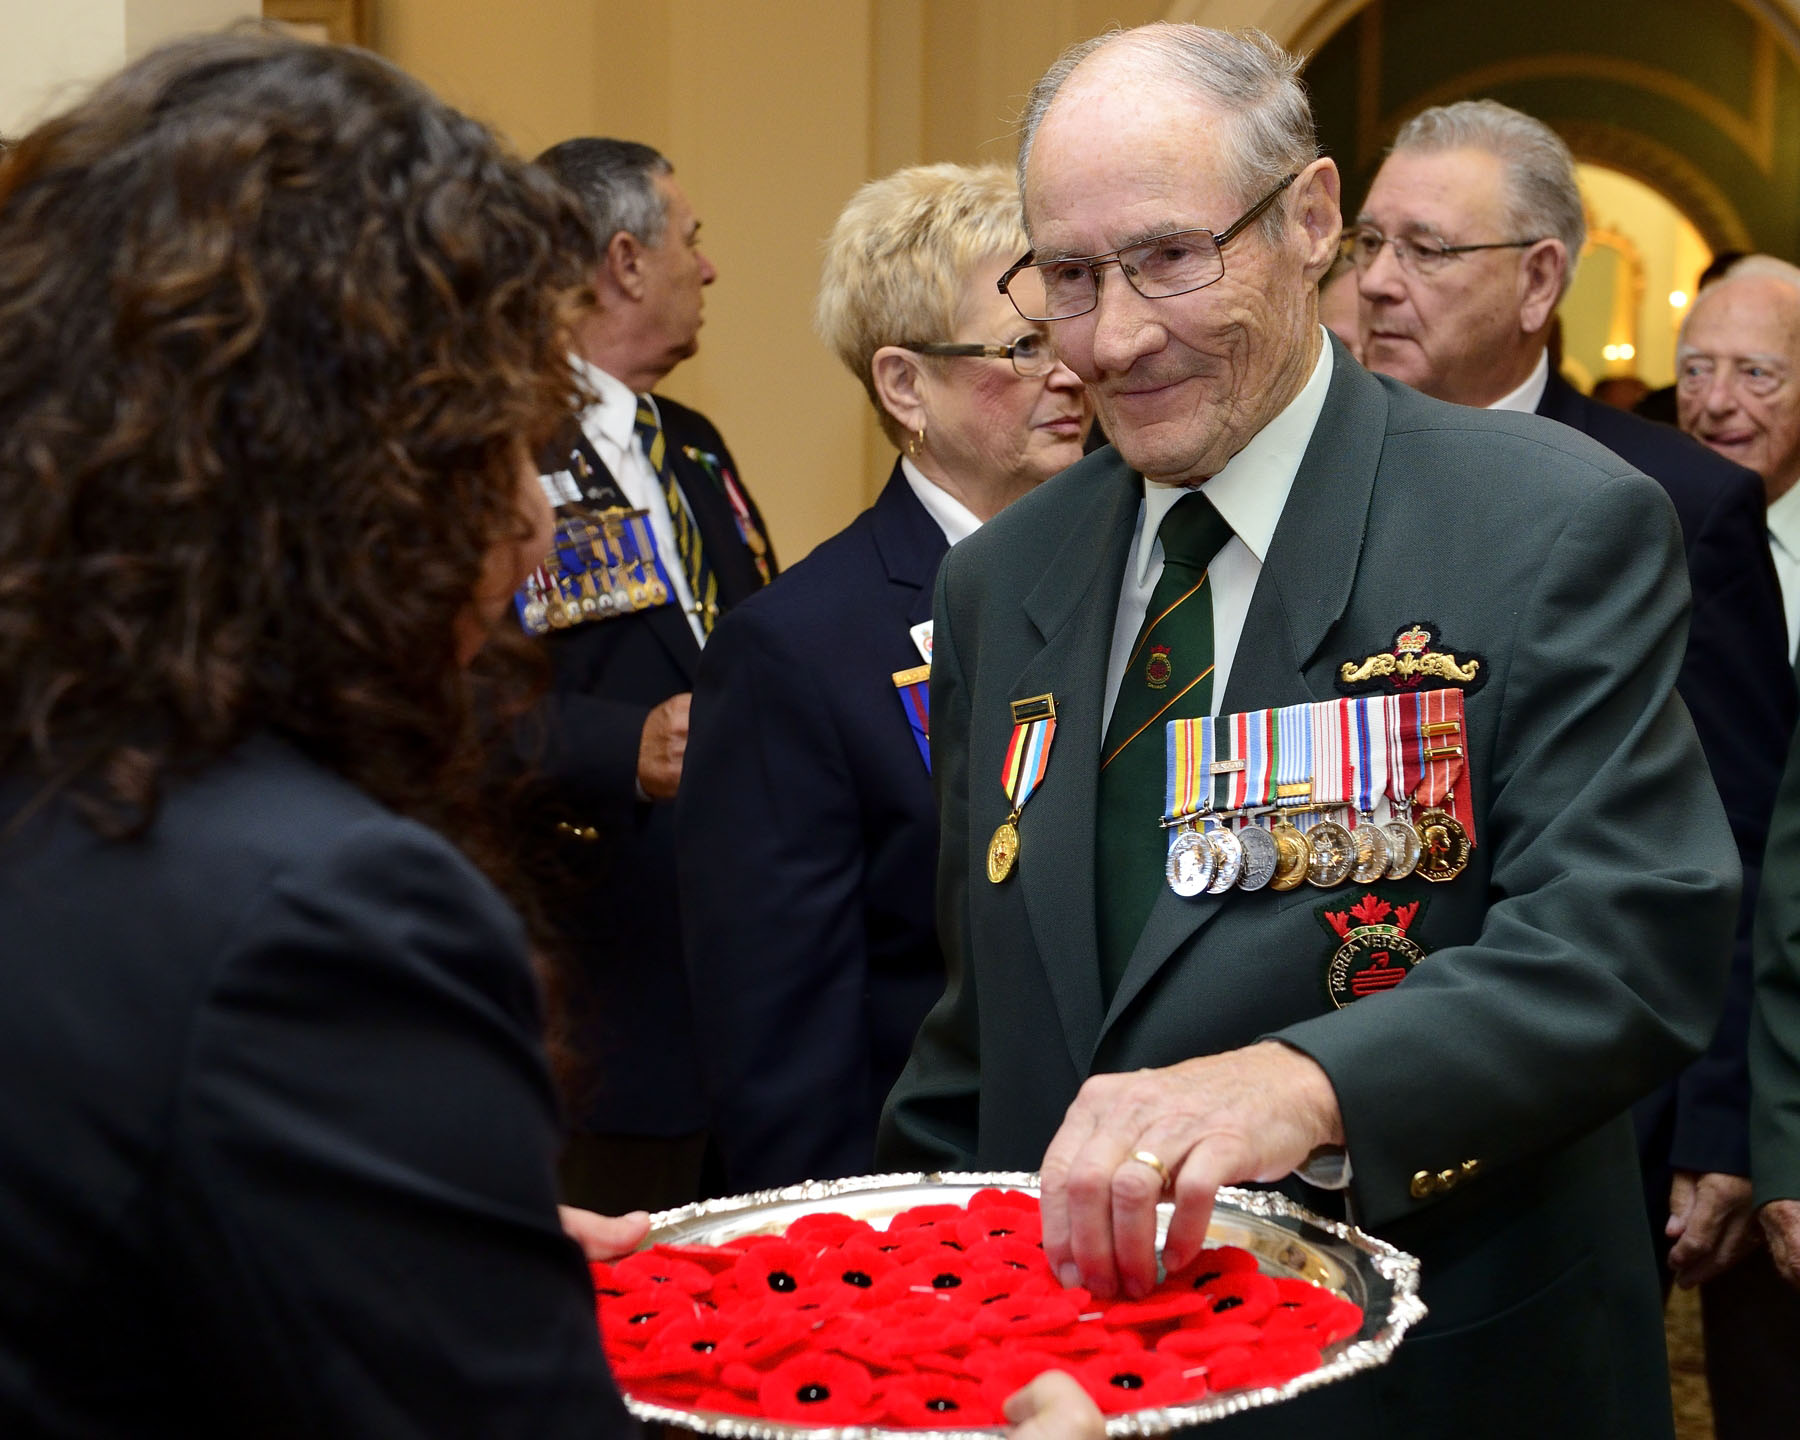 Officially adopted in Canada in 1921 by the Great War Veterans' Association (the predecessor of today's Royal Canadian Legion), poppies are recognized as the national symbol of remembrance for the 117 000 Canadian men and women who gave their lives during military service around the world.